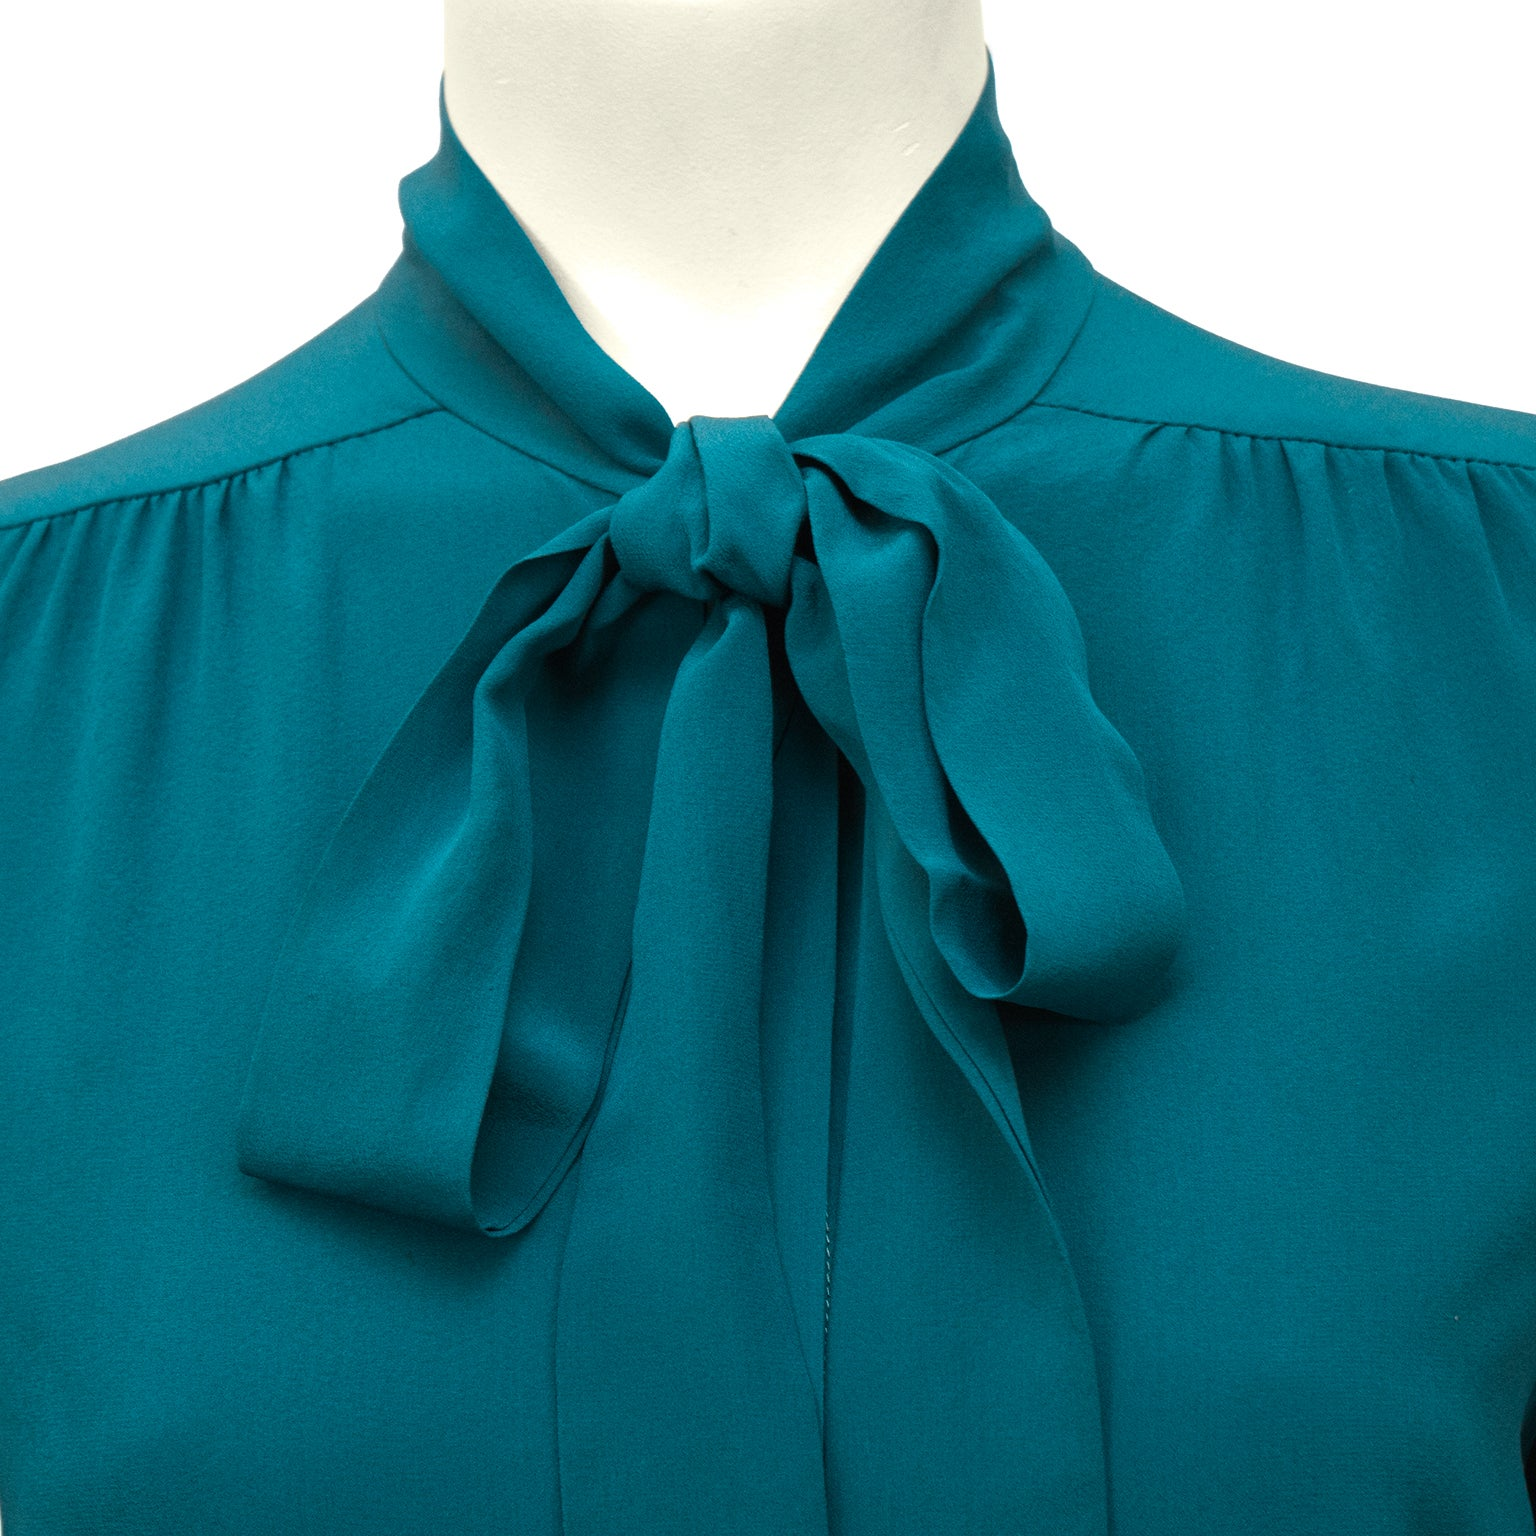 29440b2d8bc522 Chanel 1980 s Turquoise Silk Pussy Bow Shirt For Sale at 1stdibs